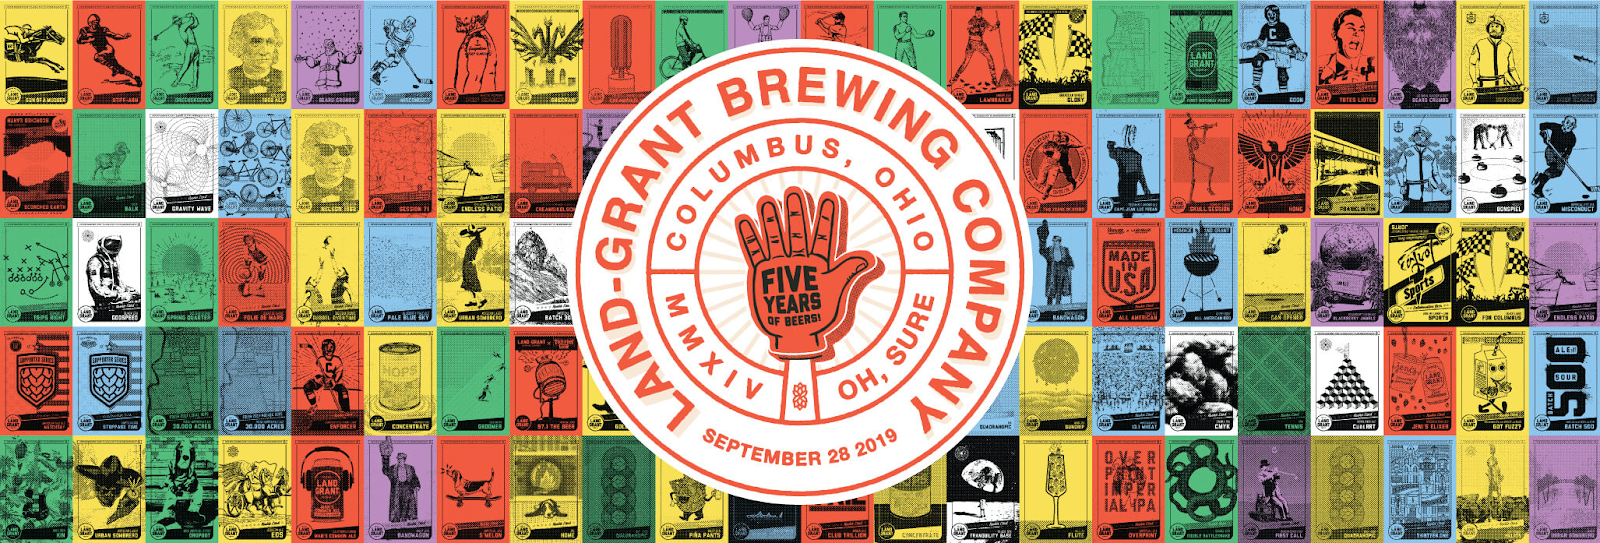 Land-Grant Brewing Company five-year anniversary logo